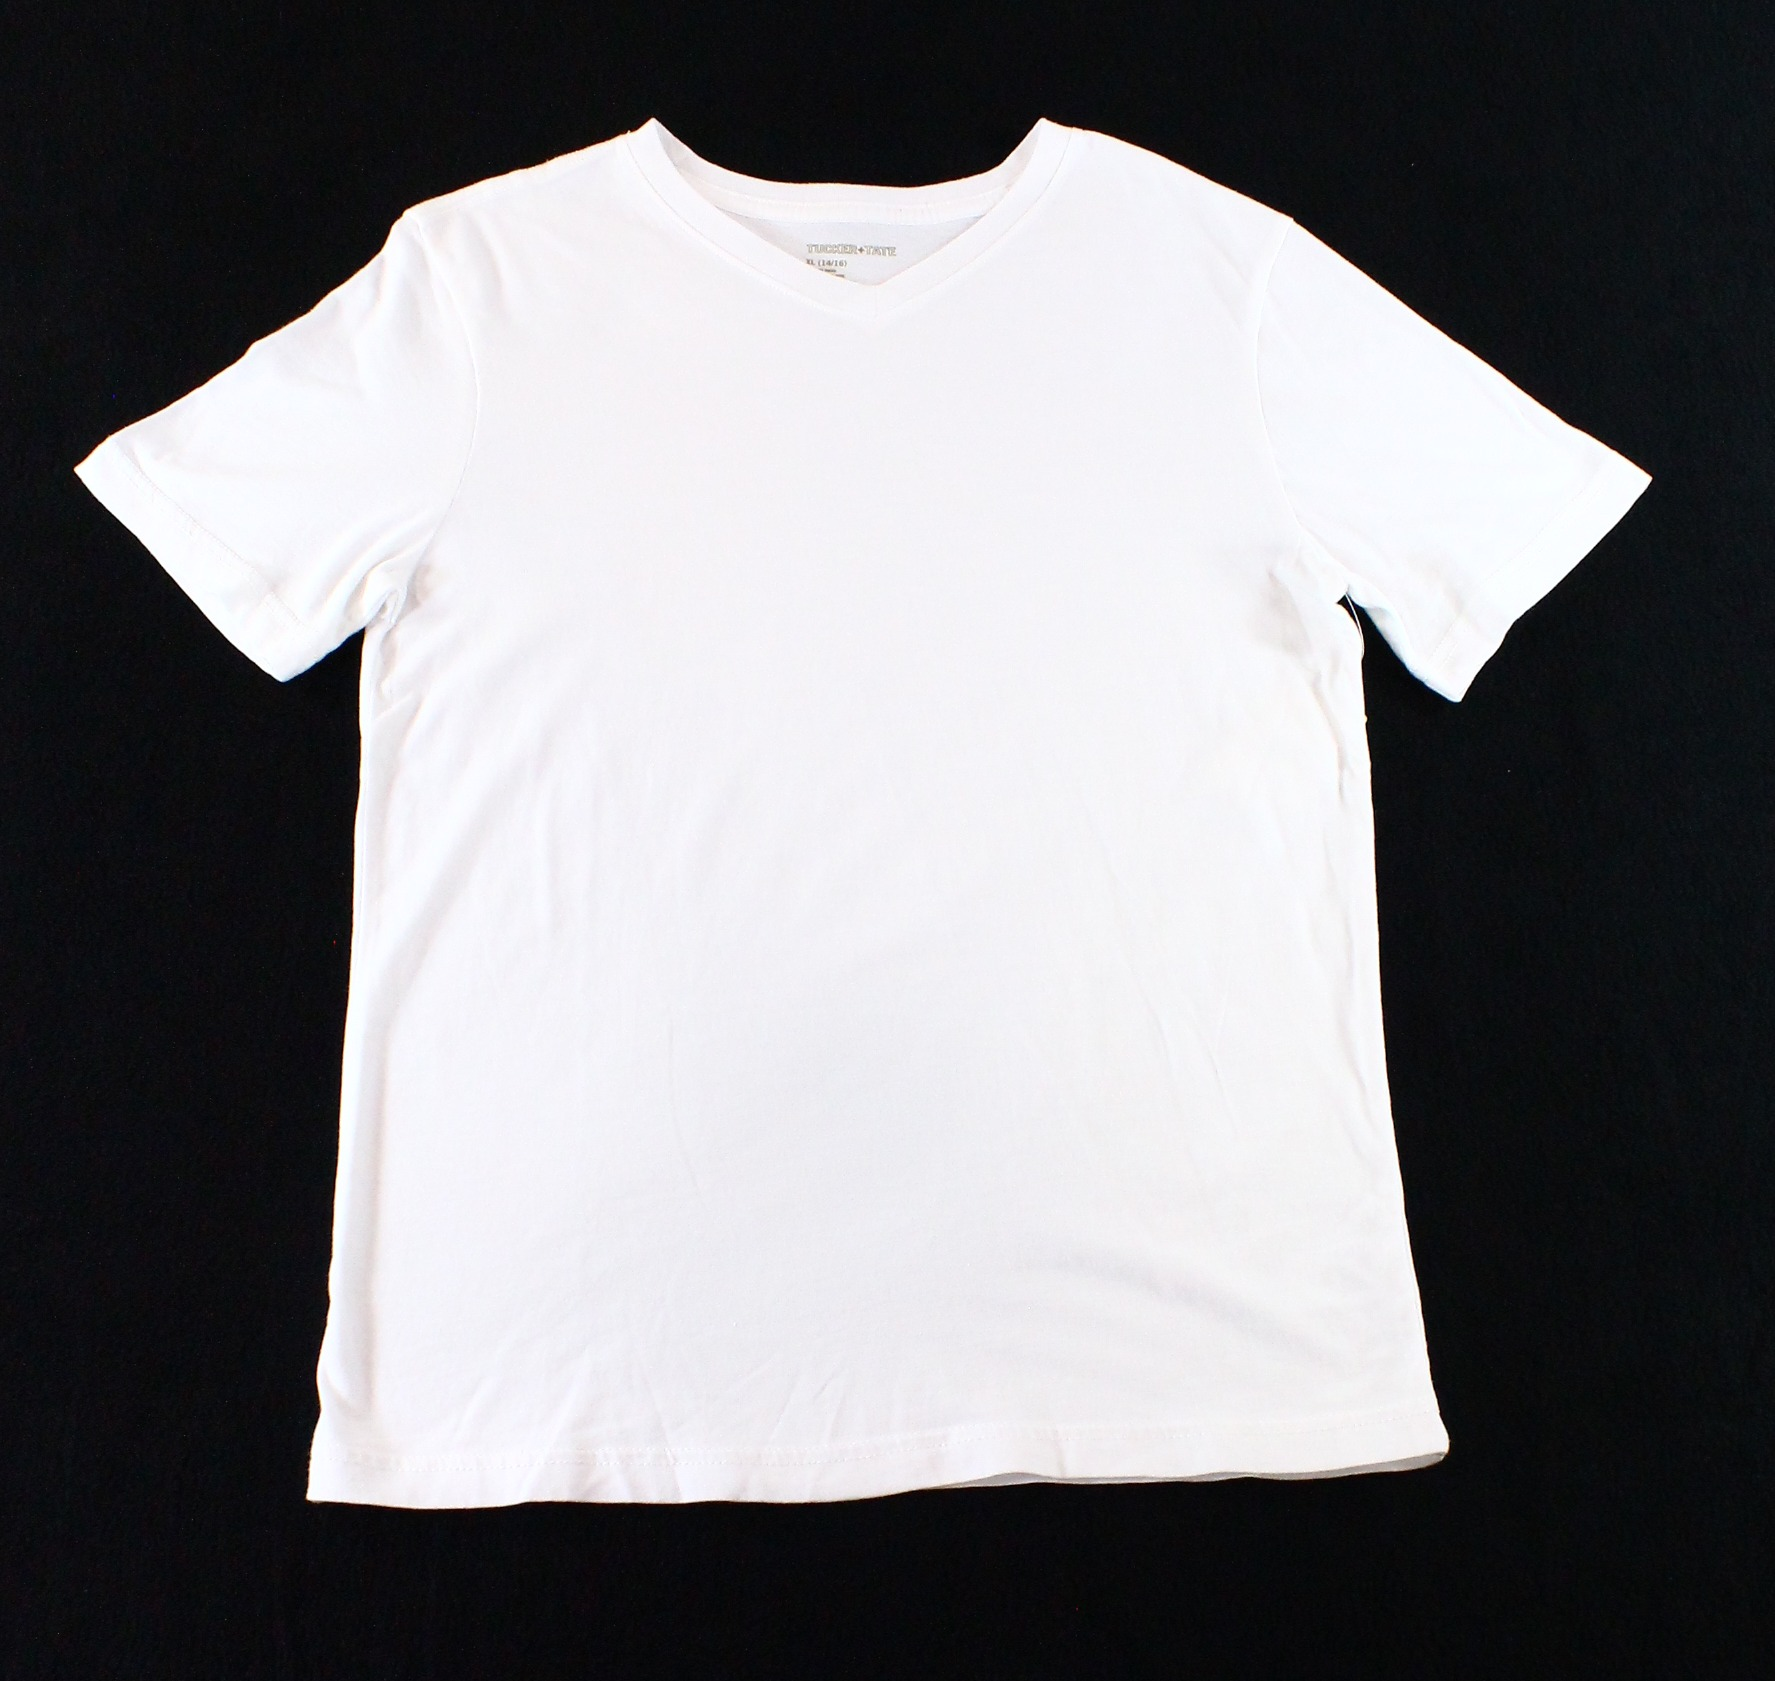 TUCKER & TATE NEW White Size XL 14-16 Short Sleeve Solid V-Neck T-Shirt DEAL